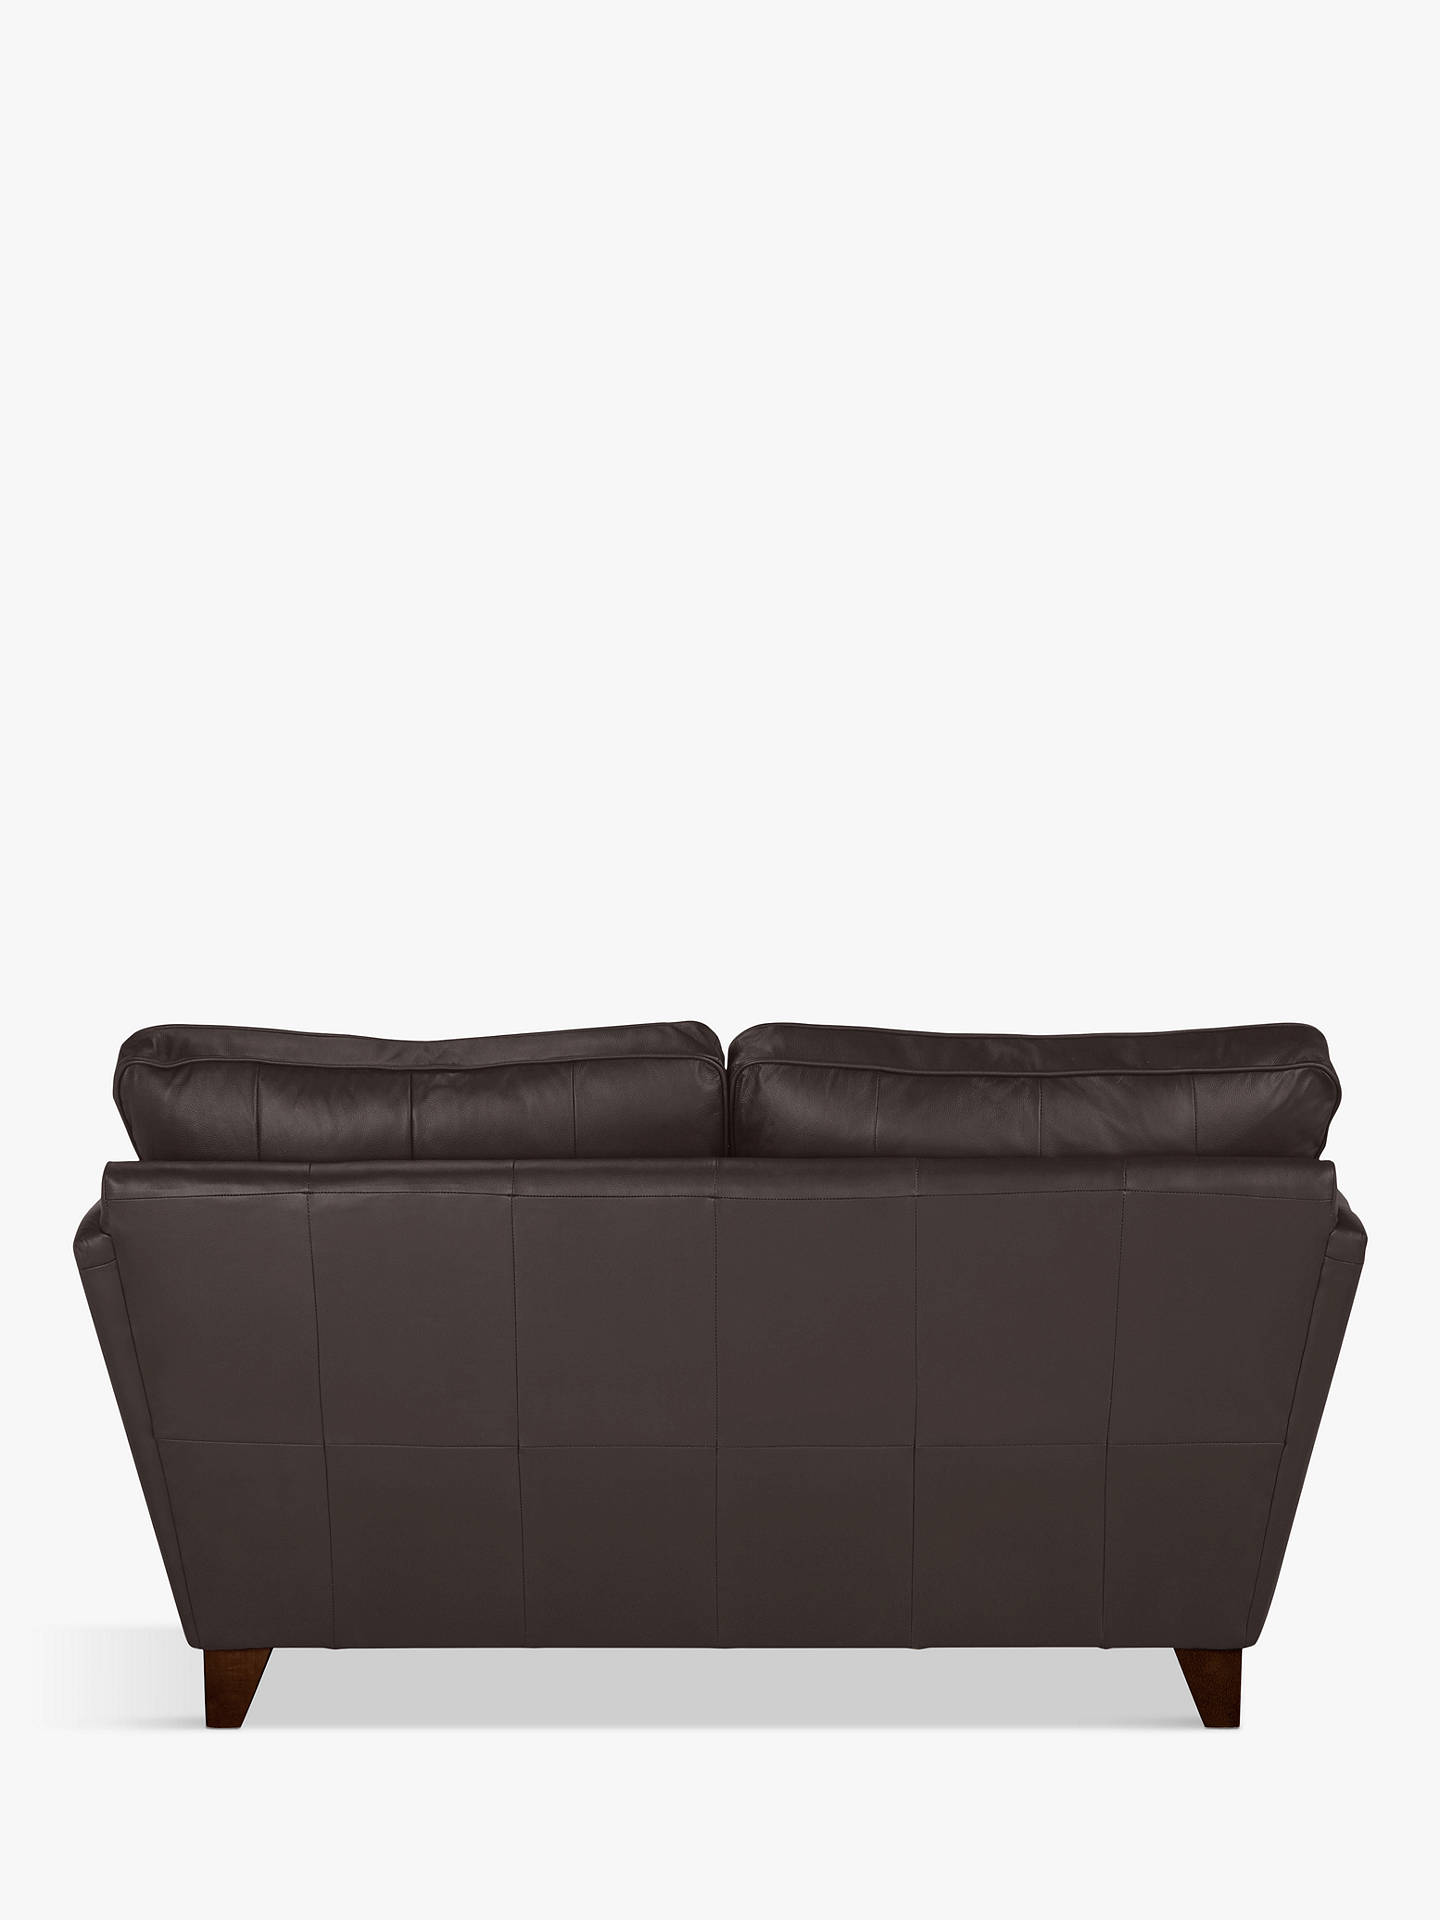 Buy John Lewis & Partners Oslo Leather Small 2 Seater Sofa, Dark Leg, Demetra Charcoal Online at johnlewis.com